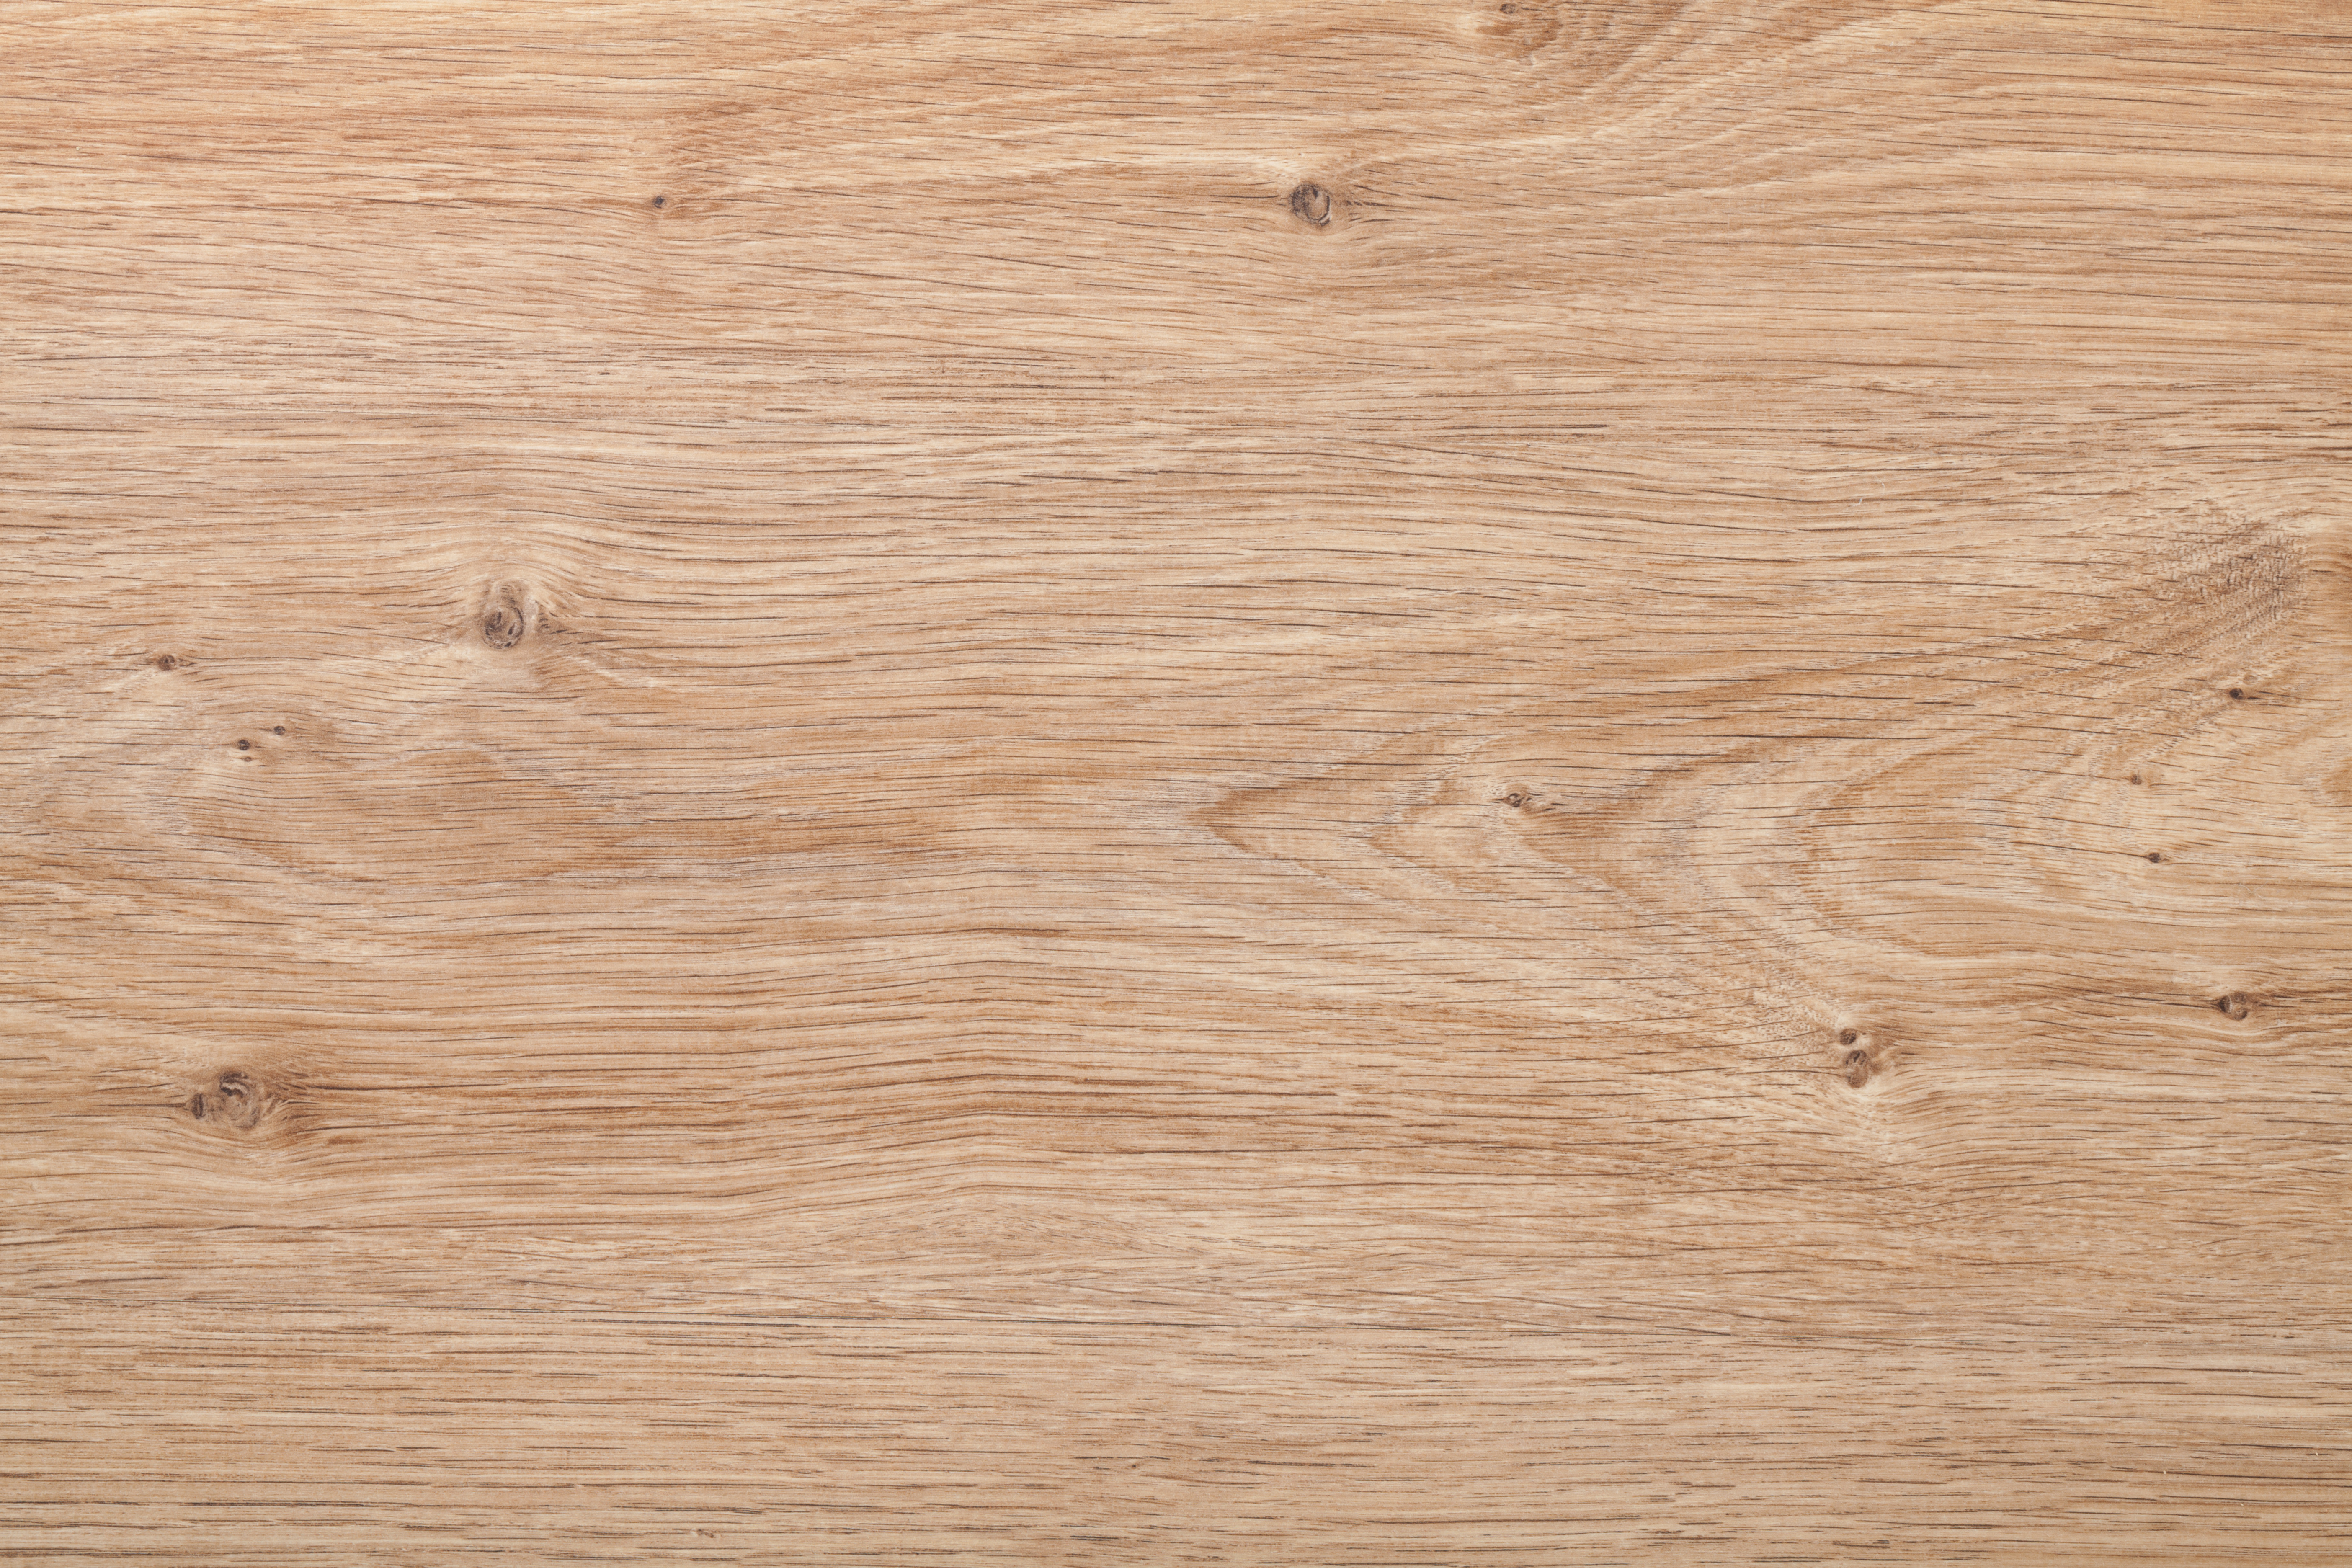 European Oak Panels Hanson Plywood